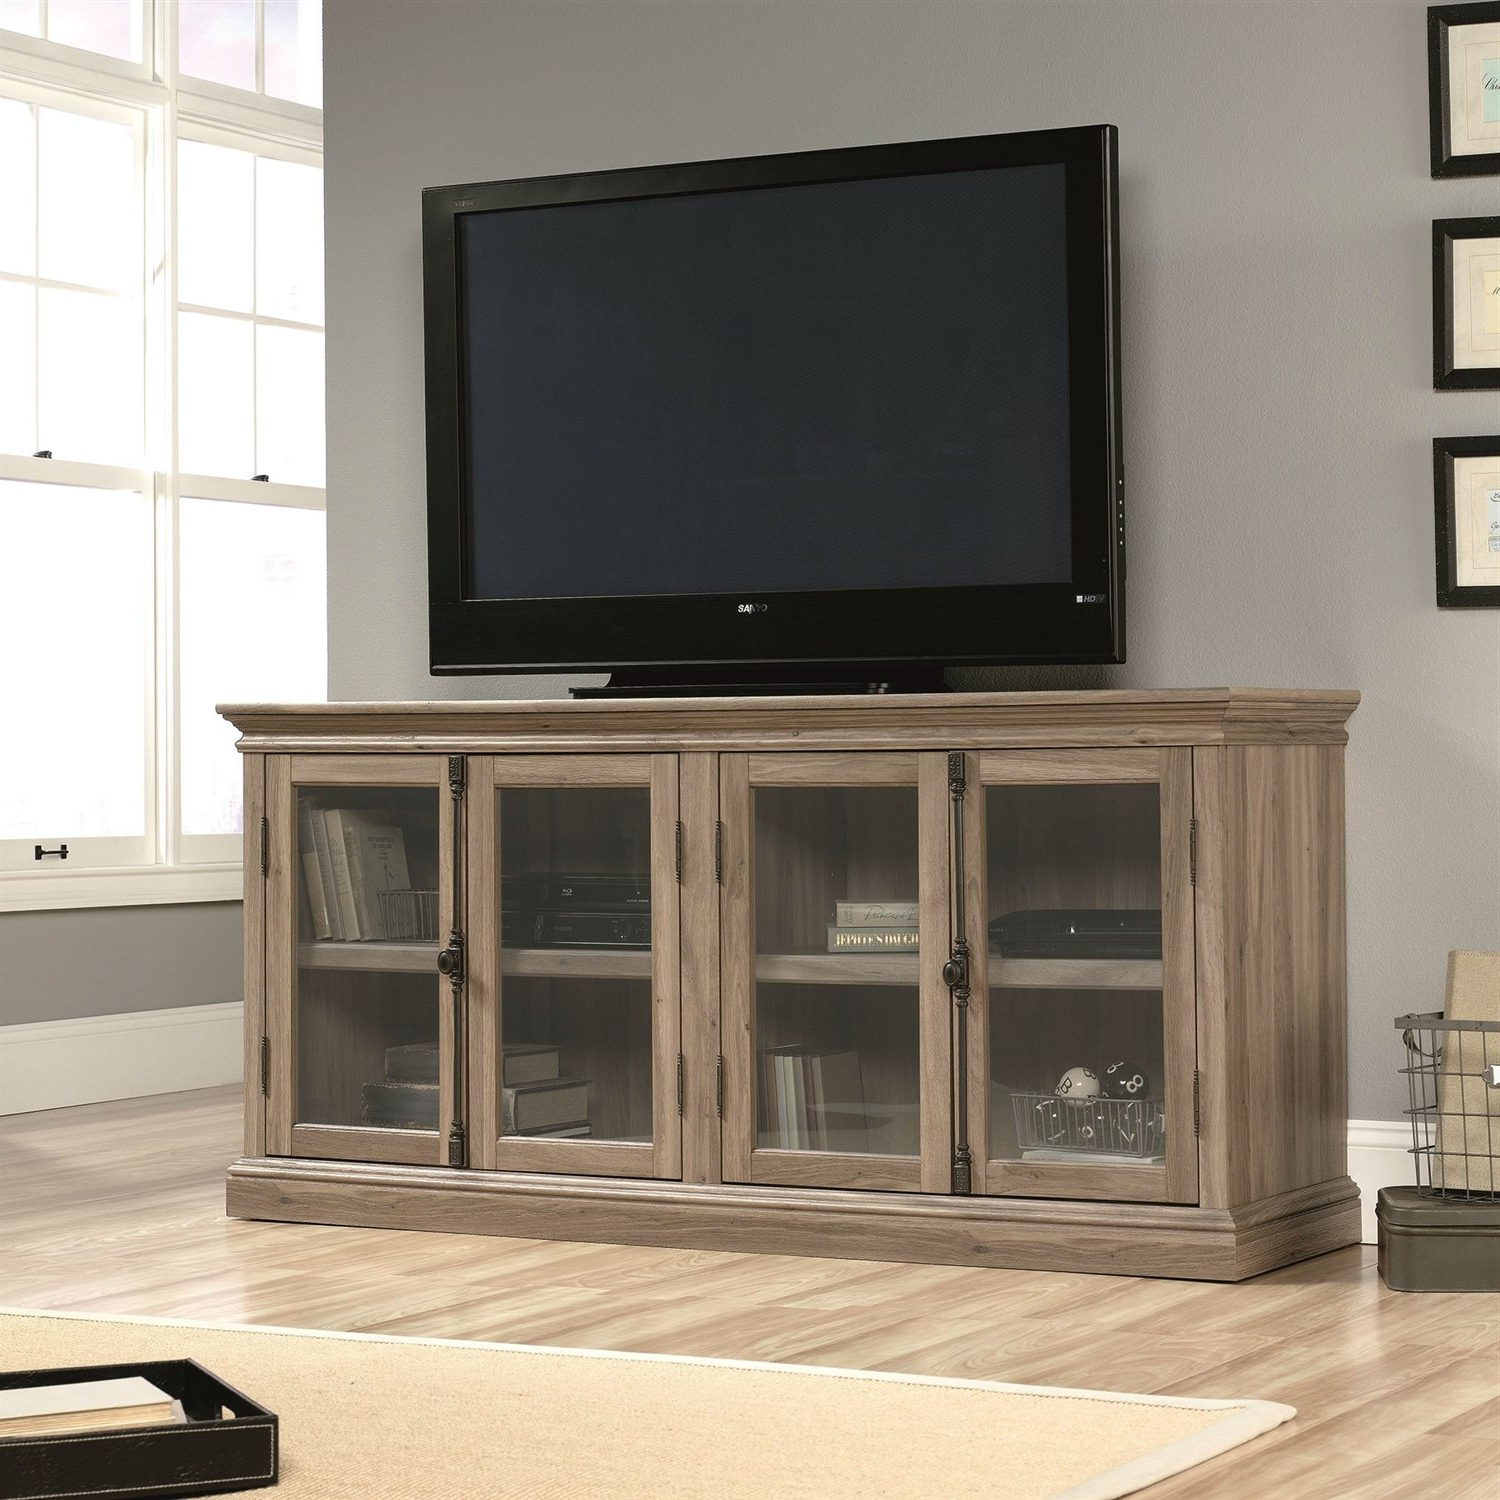 Well Known Tv Cabinets With Glass Doors With This Salt Oak Wood Finish Tv Stand With Tempered Glass Doors – Fits (View 12 of 20)